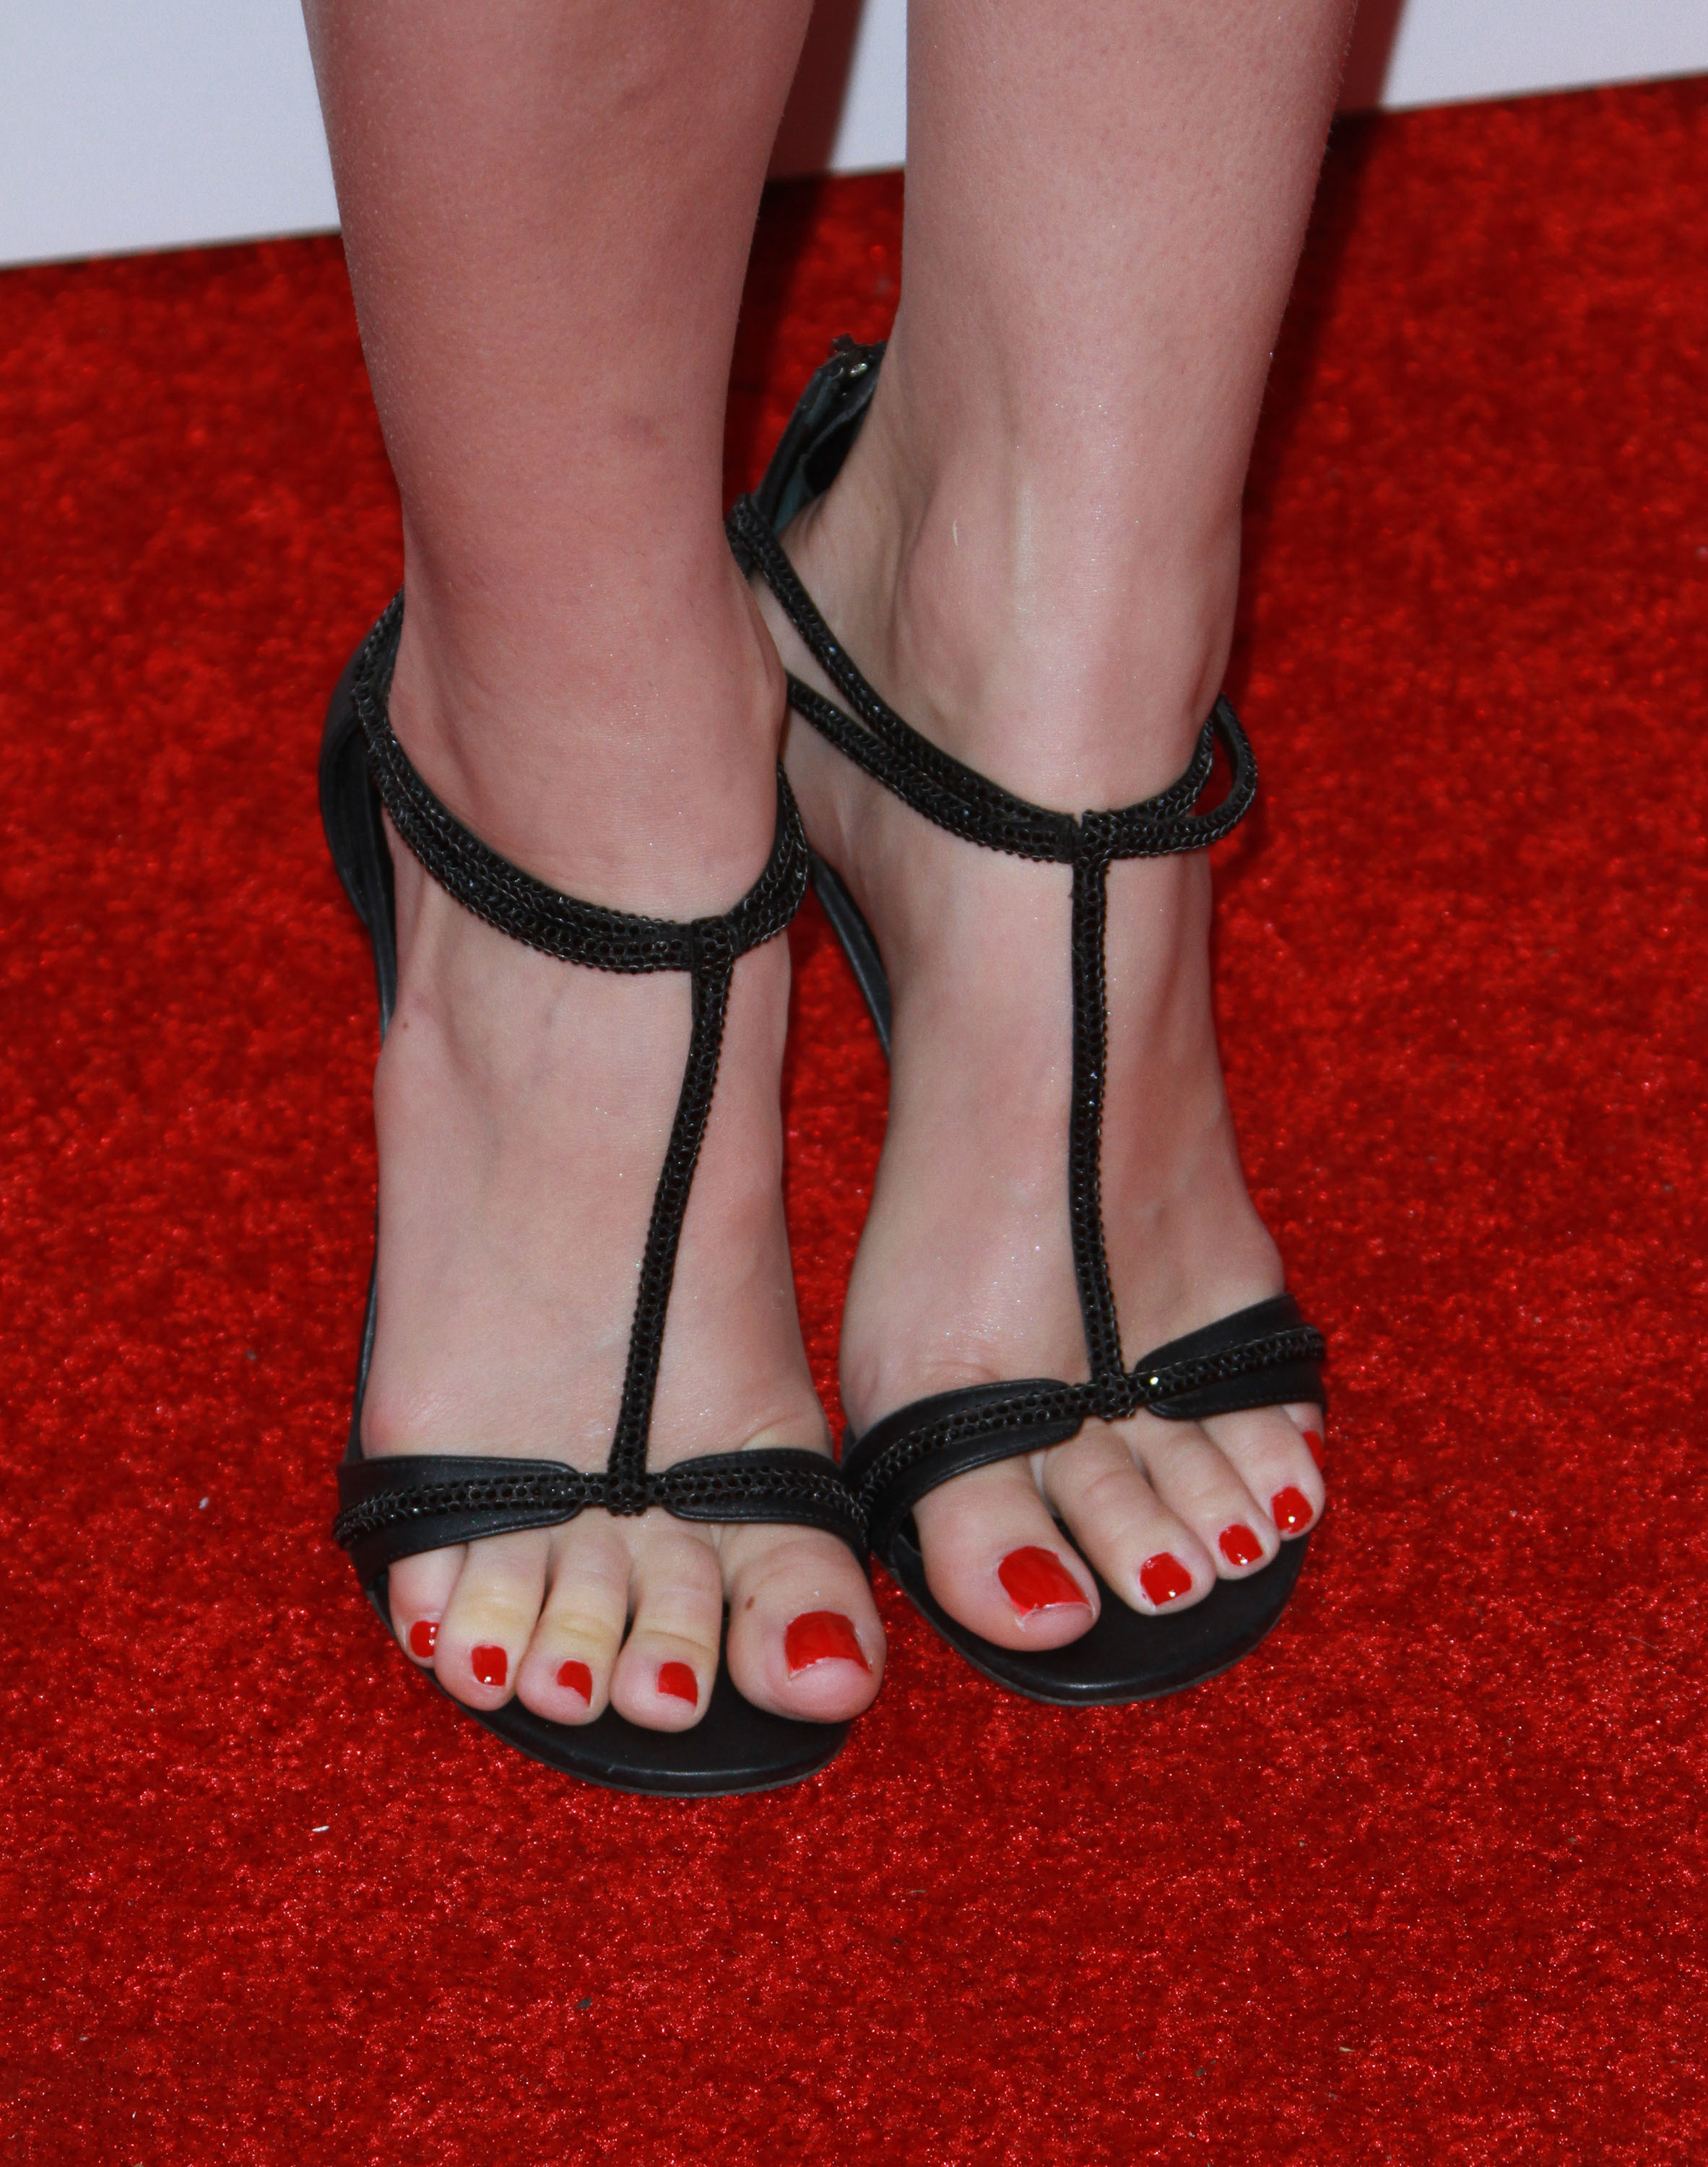 Cervix Pussy Beth Behrs Closeup Pictures Of Her Feet